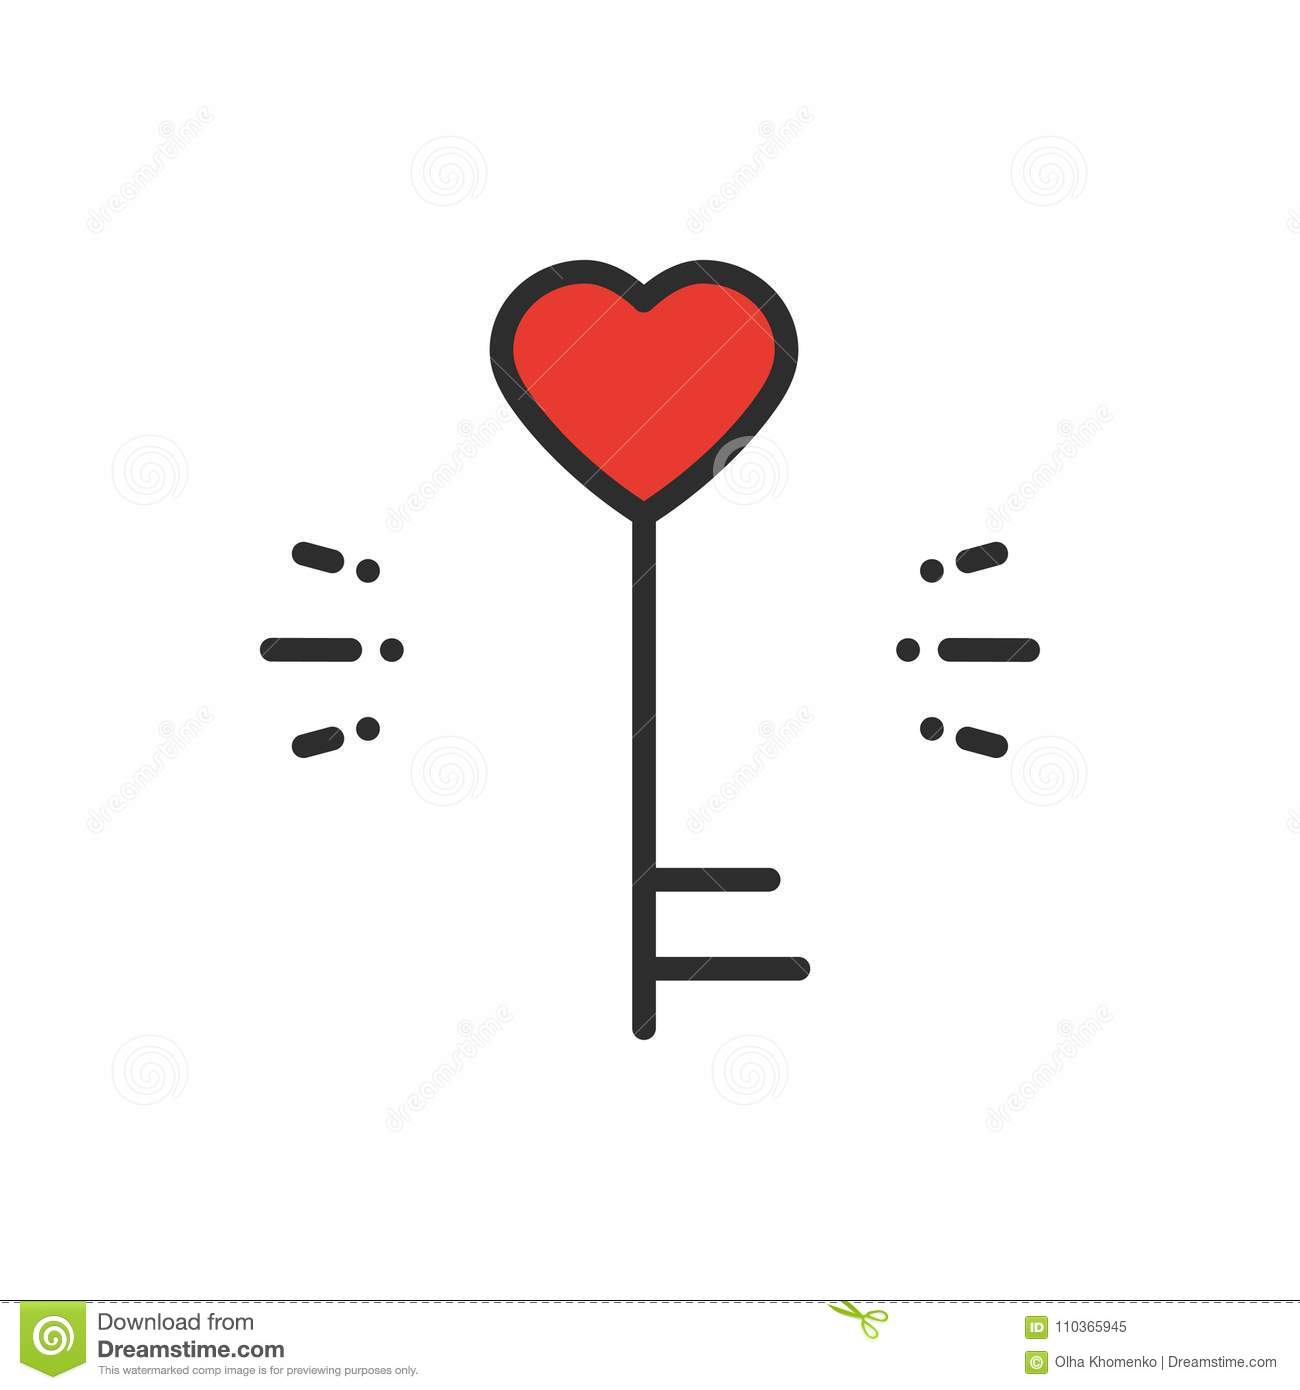 Key line icon. Heart shape. Happy Valentine day sign and symbol. Love couple relationship dating wedding day theme.